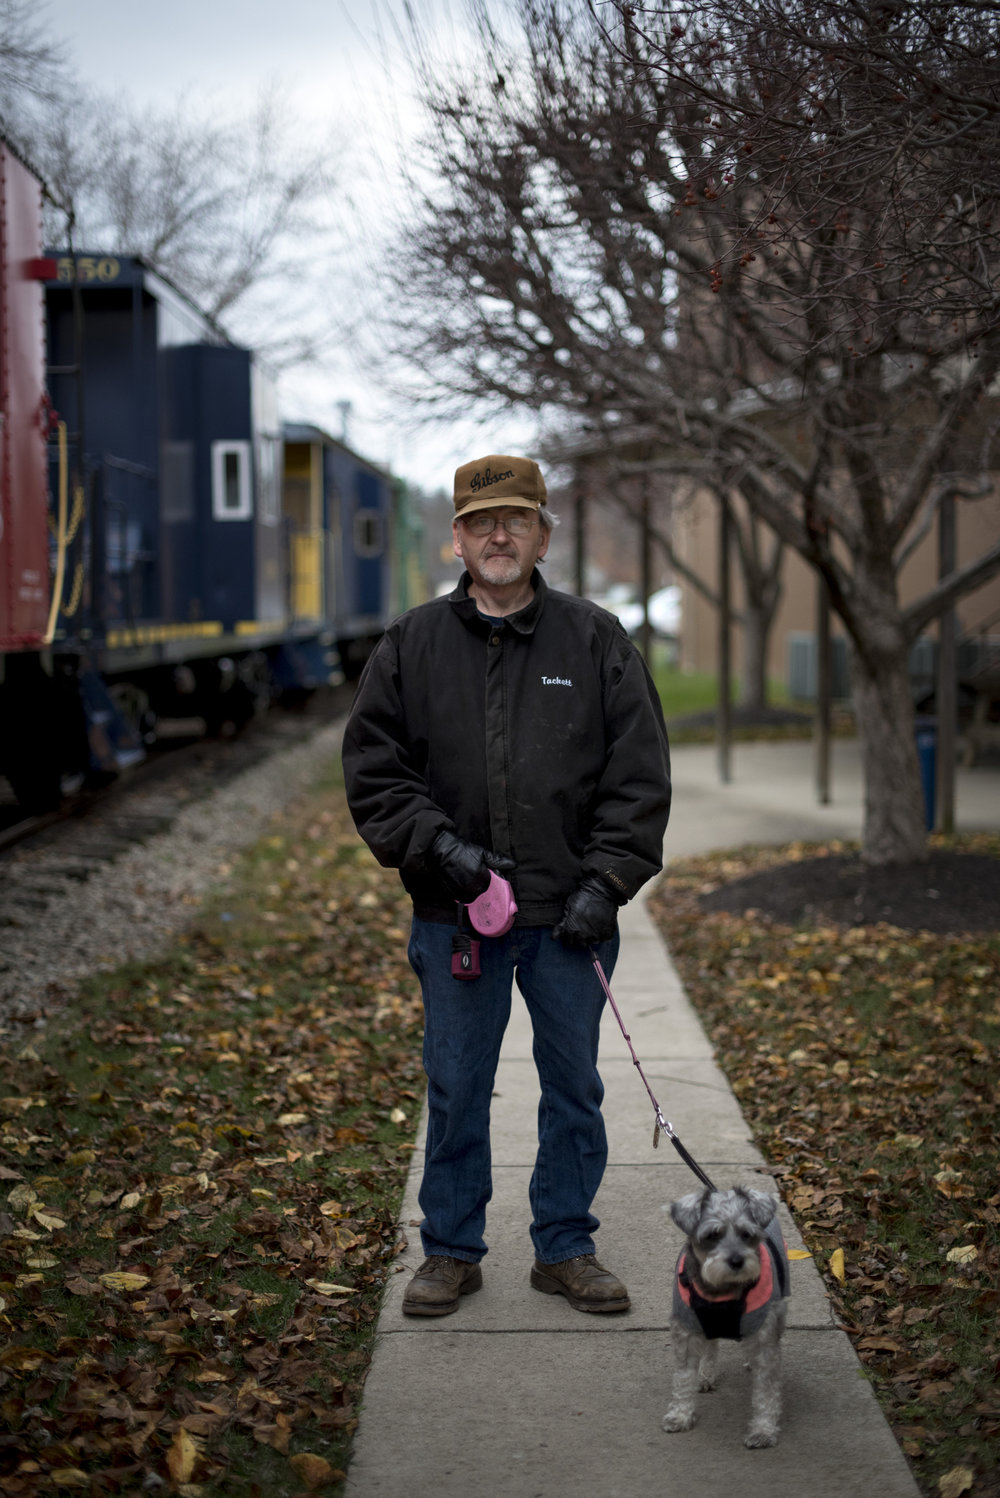 Mike Tackett walks his dog Maggie next to the Hocking Valley Scenic Railway in Nelsonville, Ohio on Dec. 9, 2016. Tackett is now retired, and used to work in the Nelsonville Weld Shop.